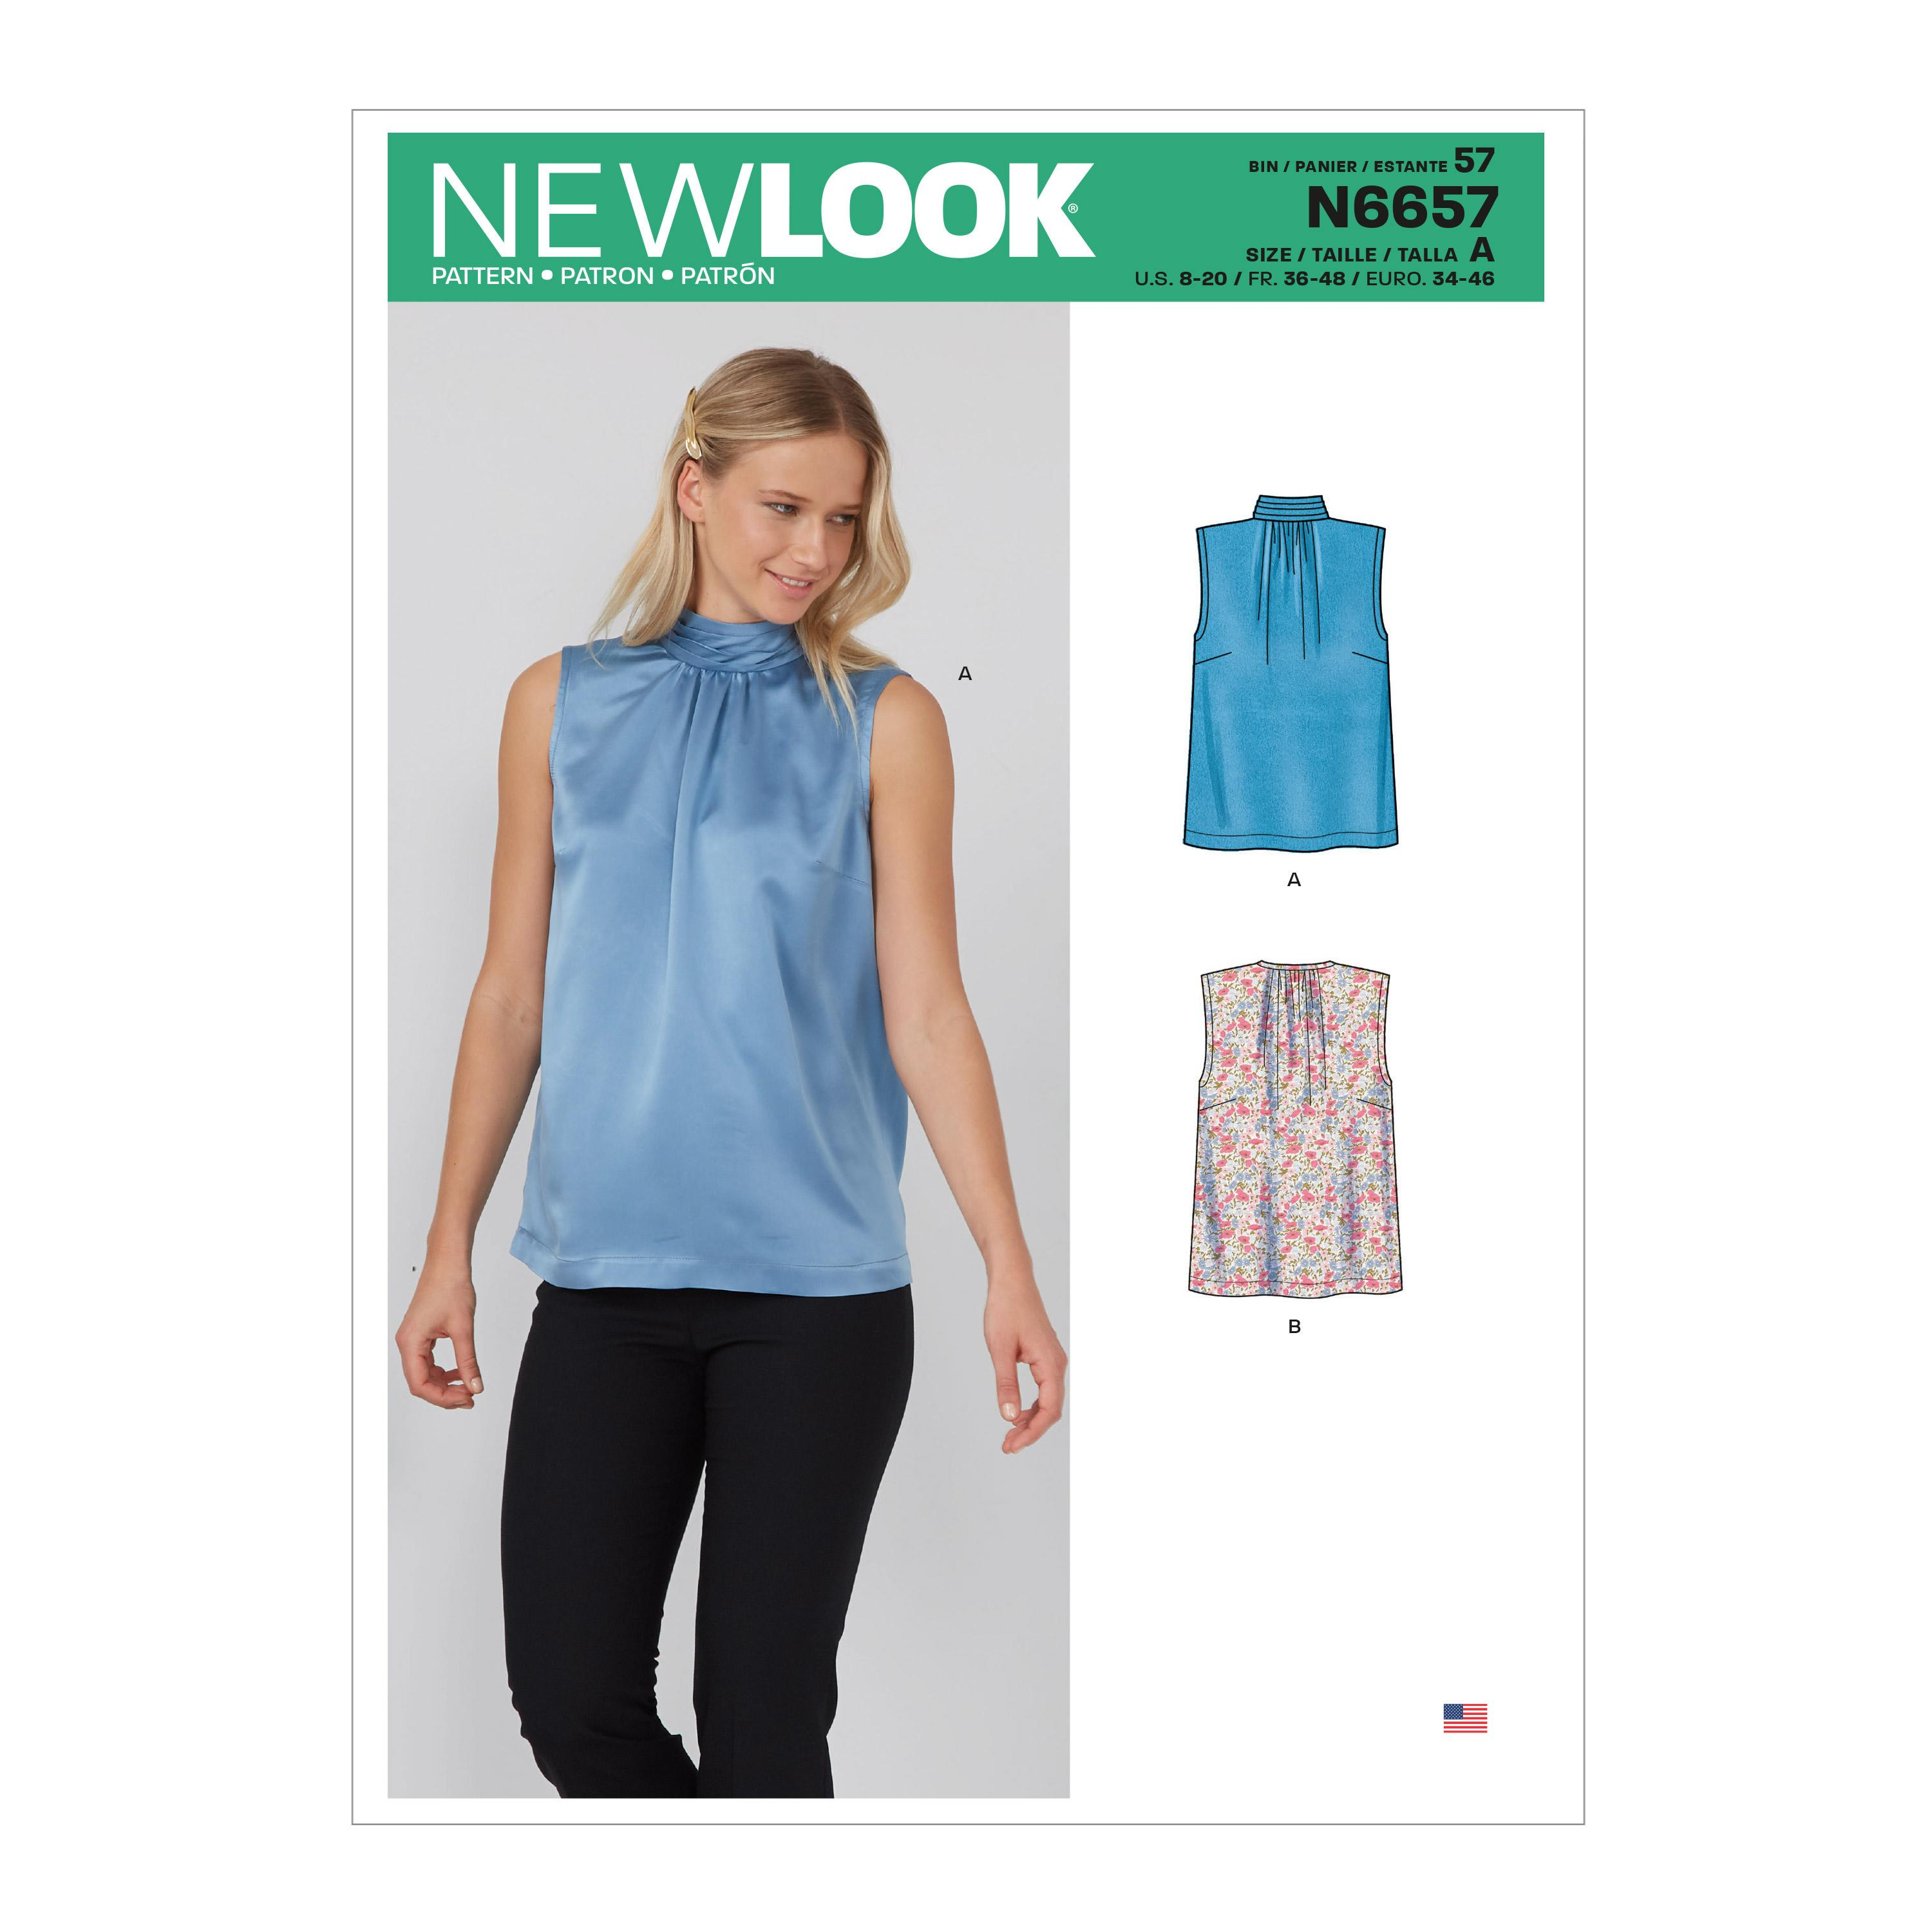 New Look Sewing Pattern N6657 Misses' Shell Top With or Without Pleated Neckband & Back Bow